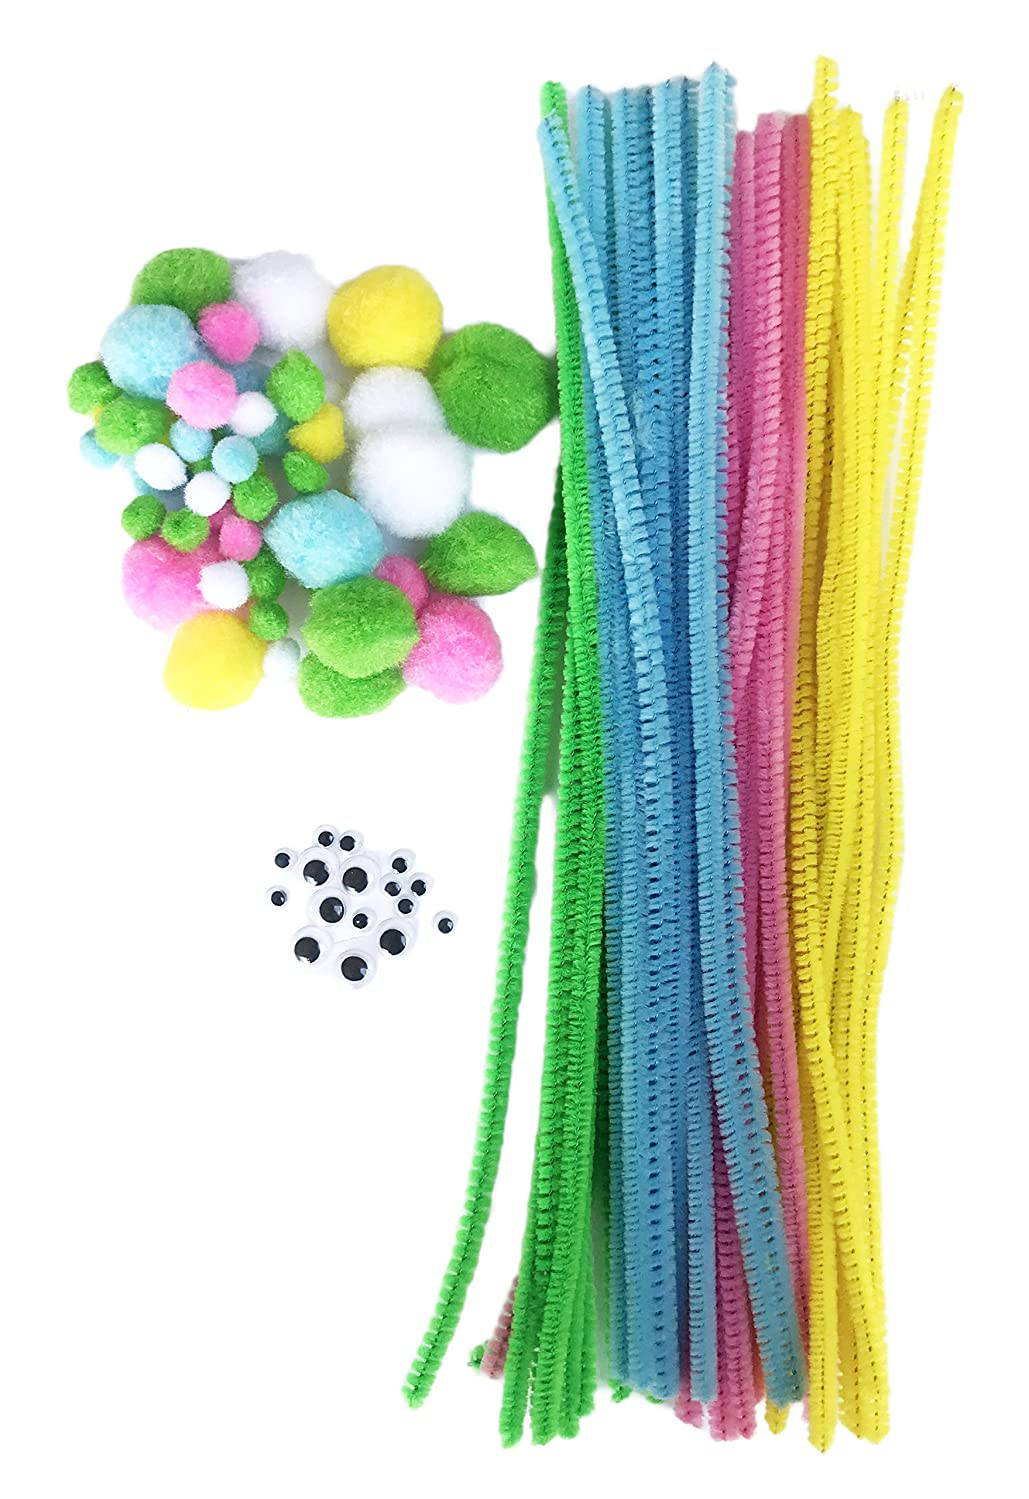 Easter Themed Crafting Chenille Stems Googly Eyes & Pompoms DIY Craft Set (102 Piece)